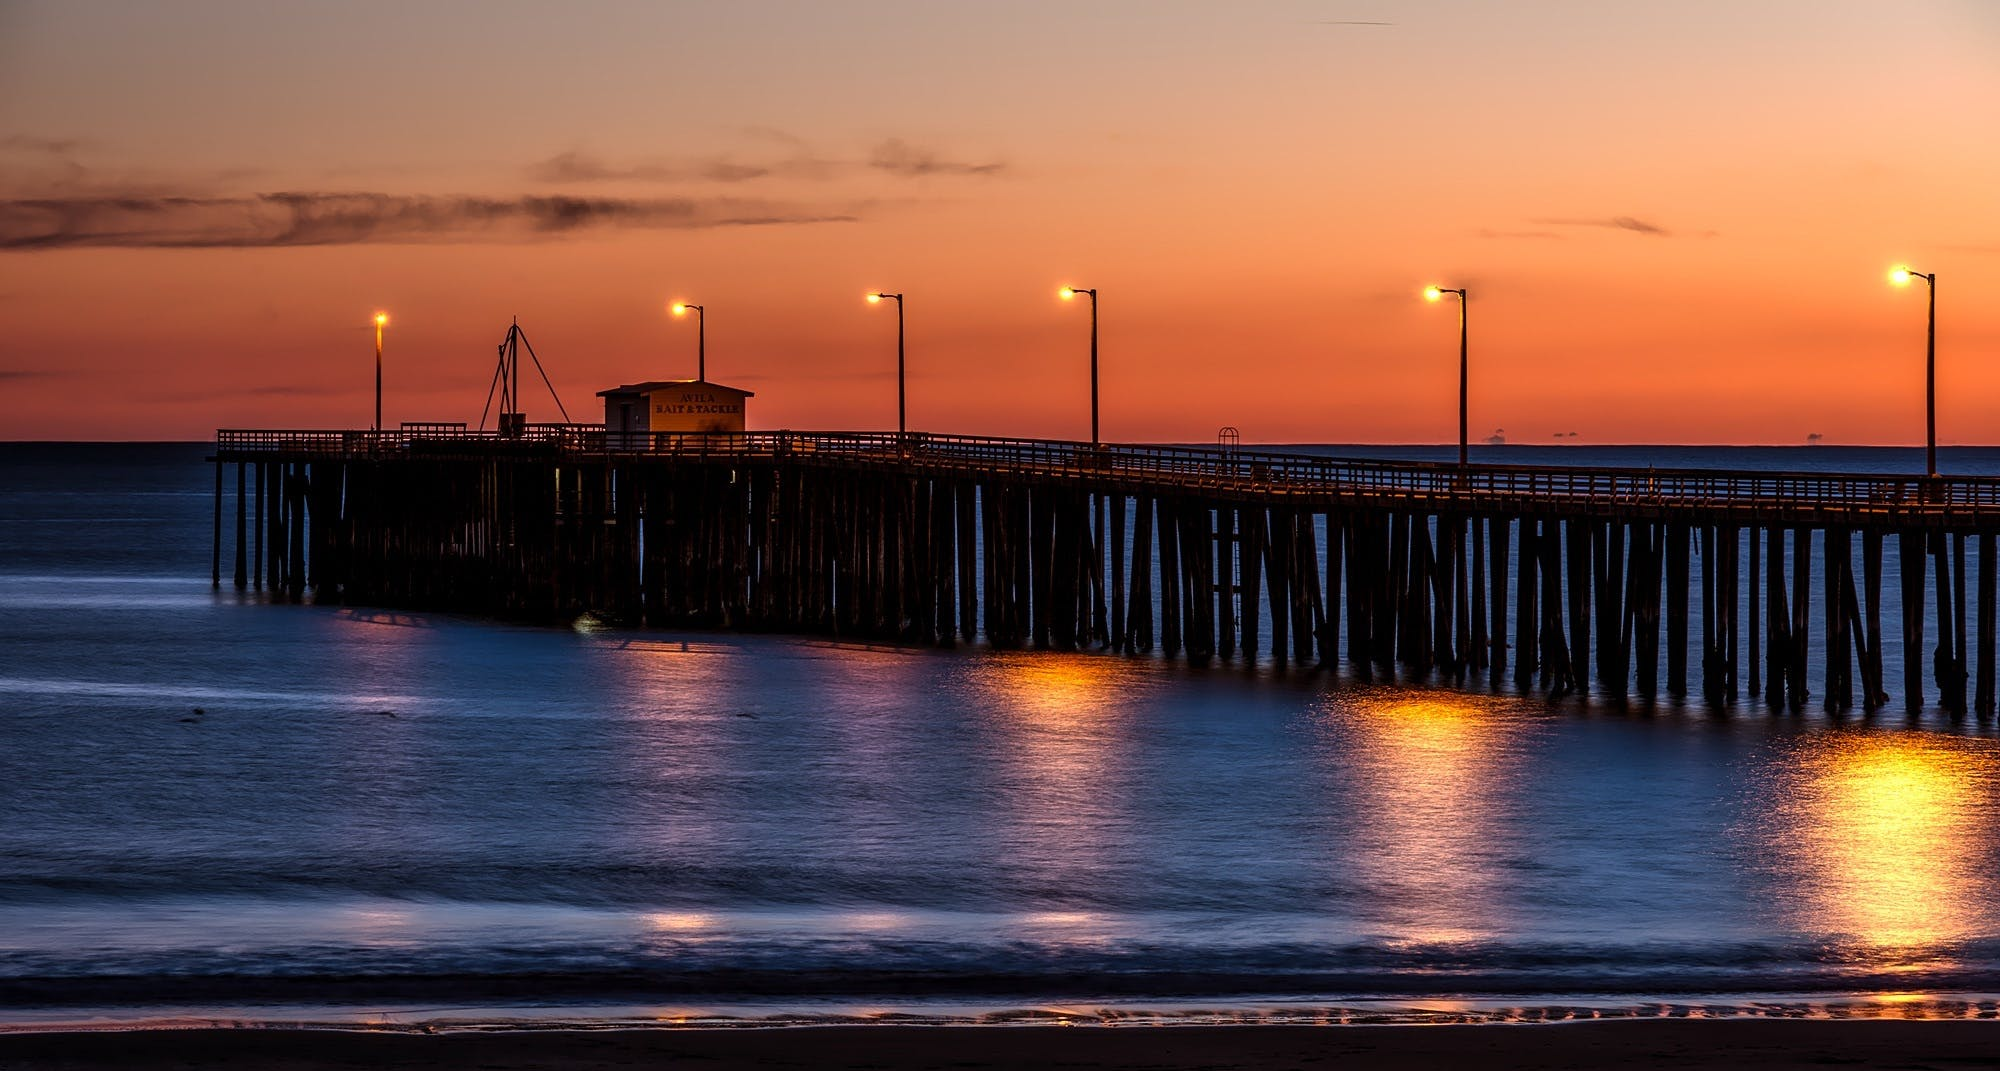 Wooden Dock on Sea Shore With Light Post during Sunset